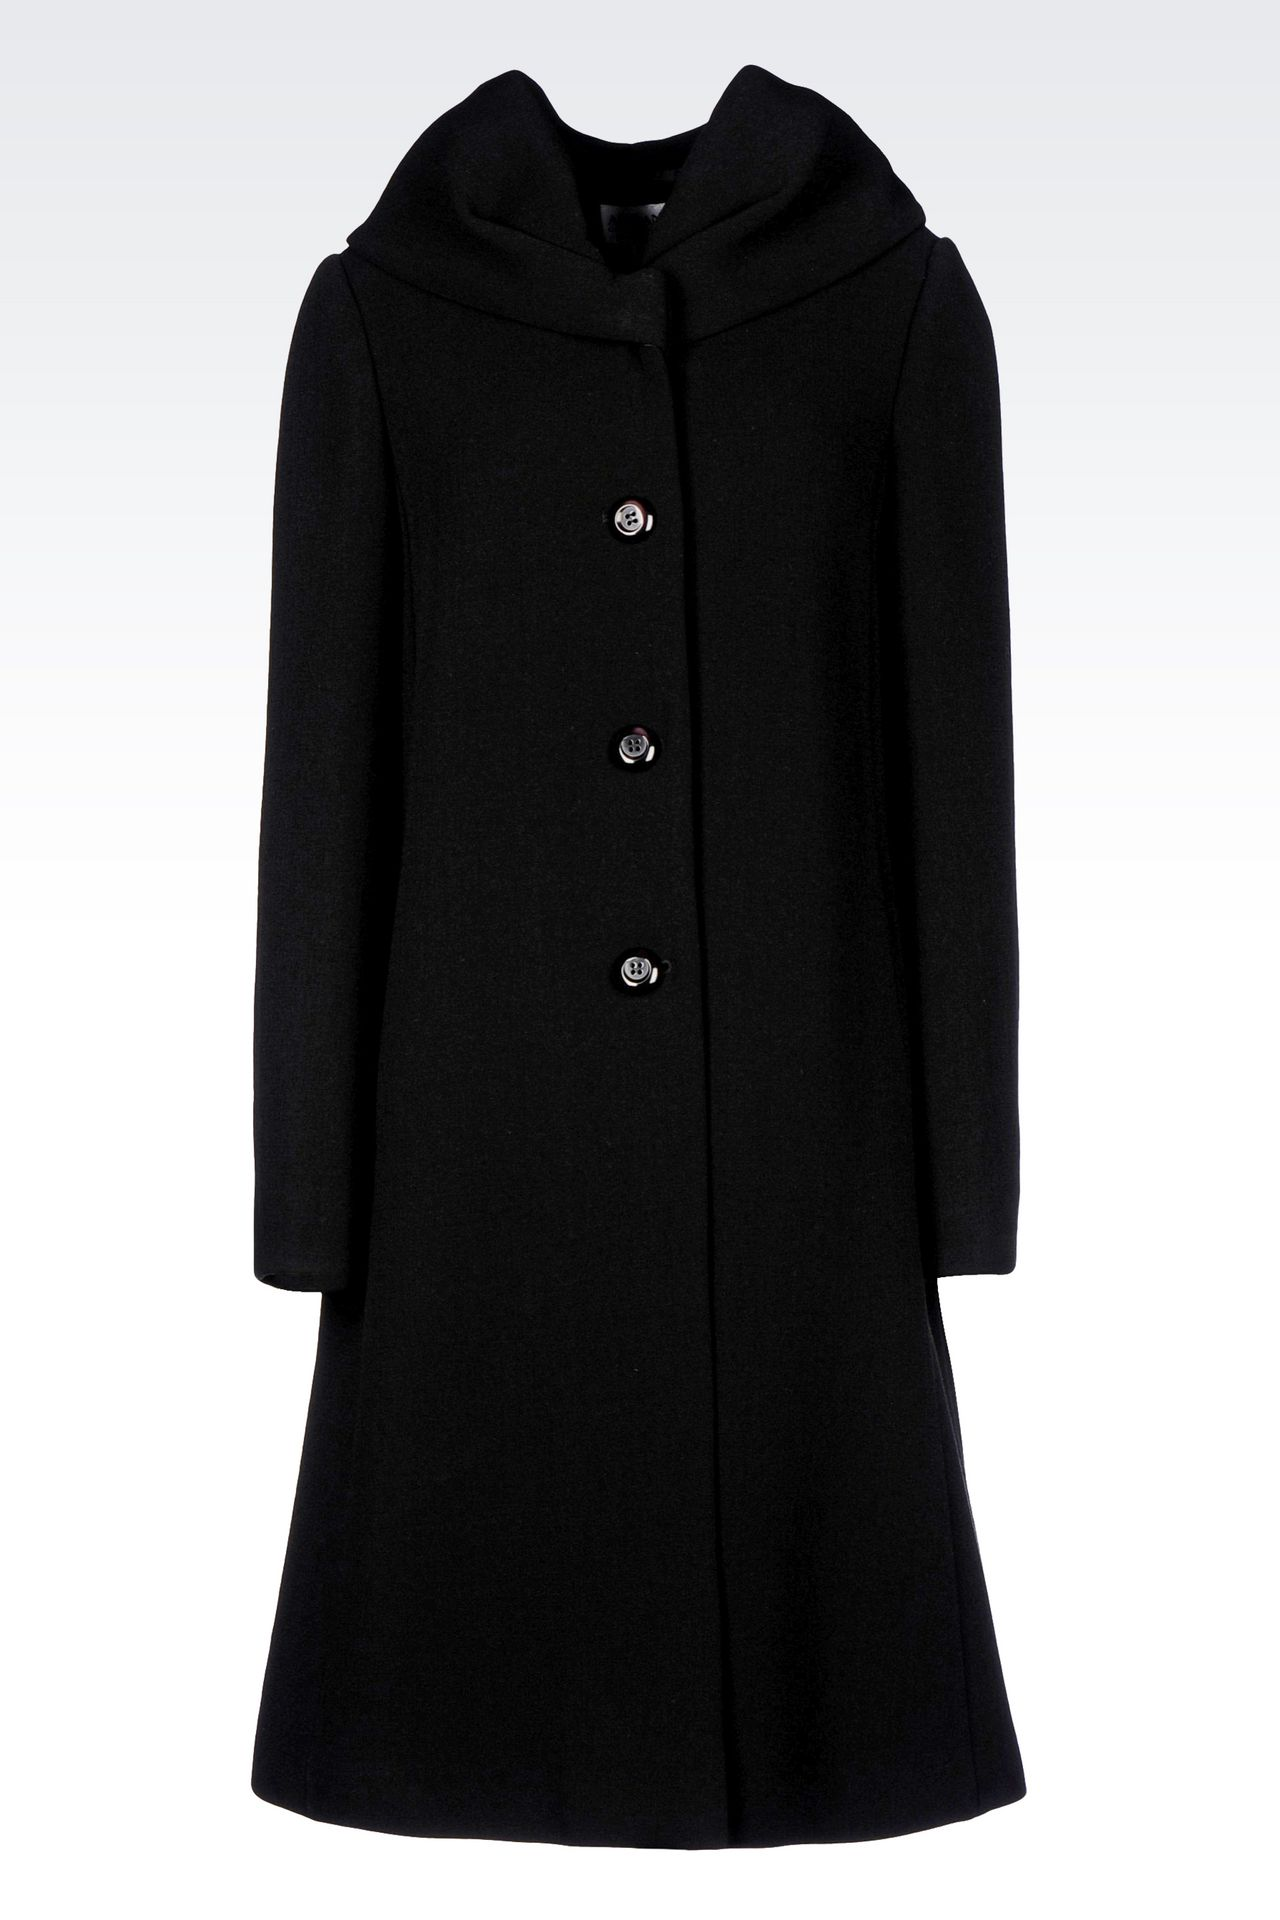 SINGLE-BREASTED COAT IN WOOL BLEND: Single-breasted coats Women by Armani - 0